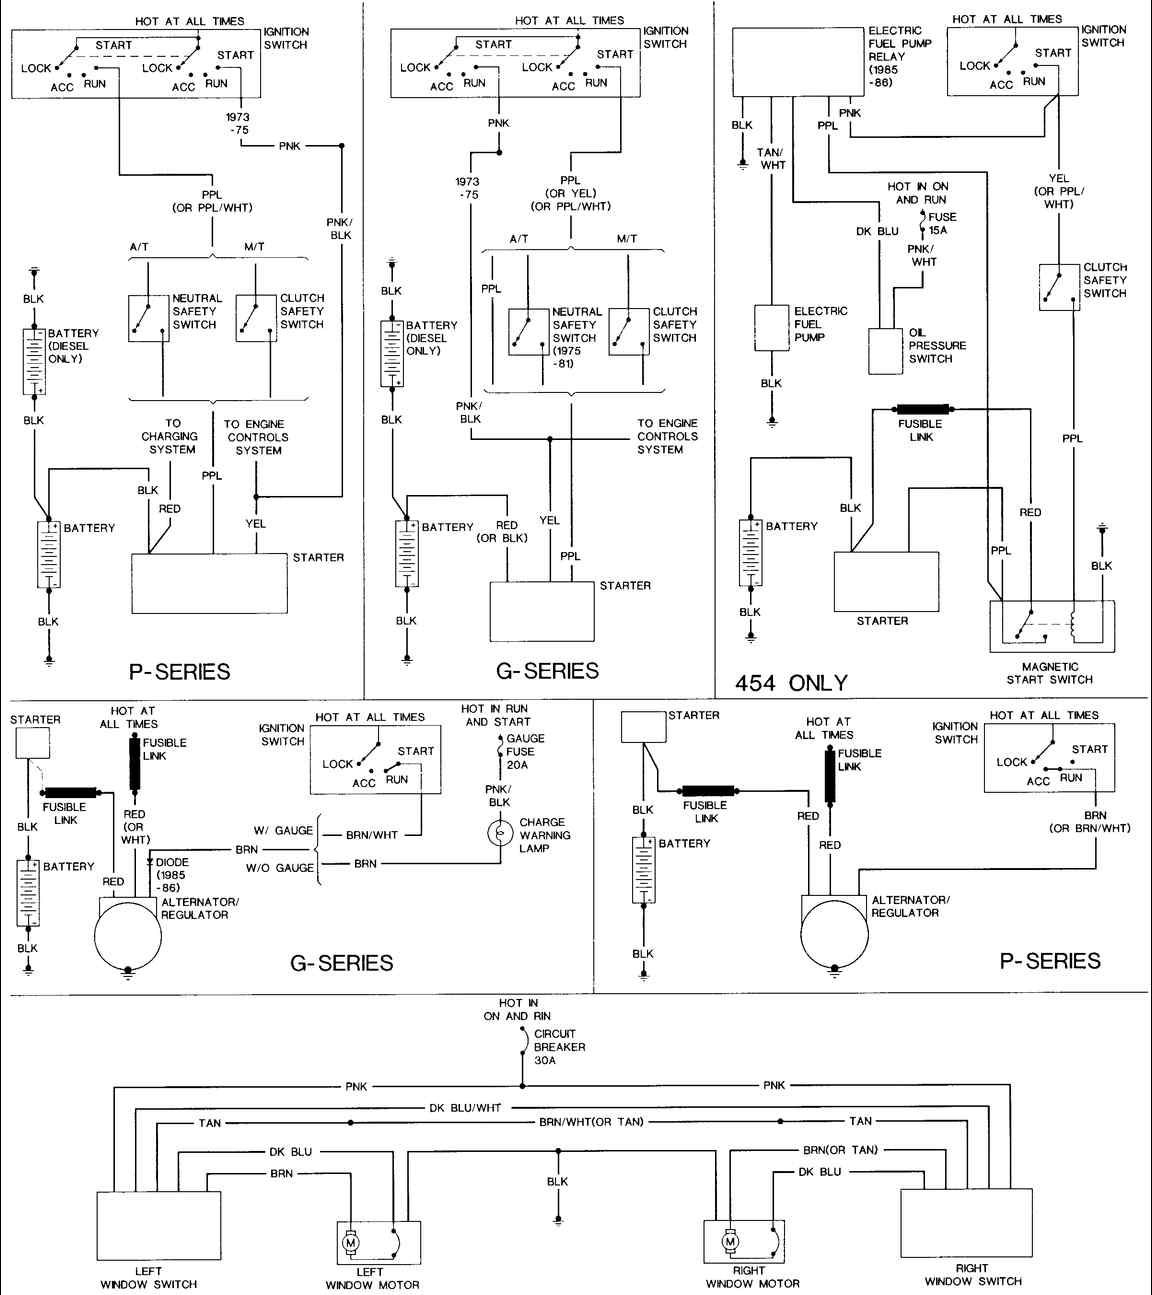 0c73623a181dc376dbb4777e2029d285 85 chevy truck wiring diagram 85 chevy van the steering column 1993 chevy silverado starter wiring diagram at alyssarenee.co